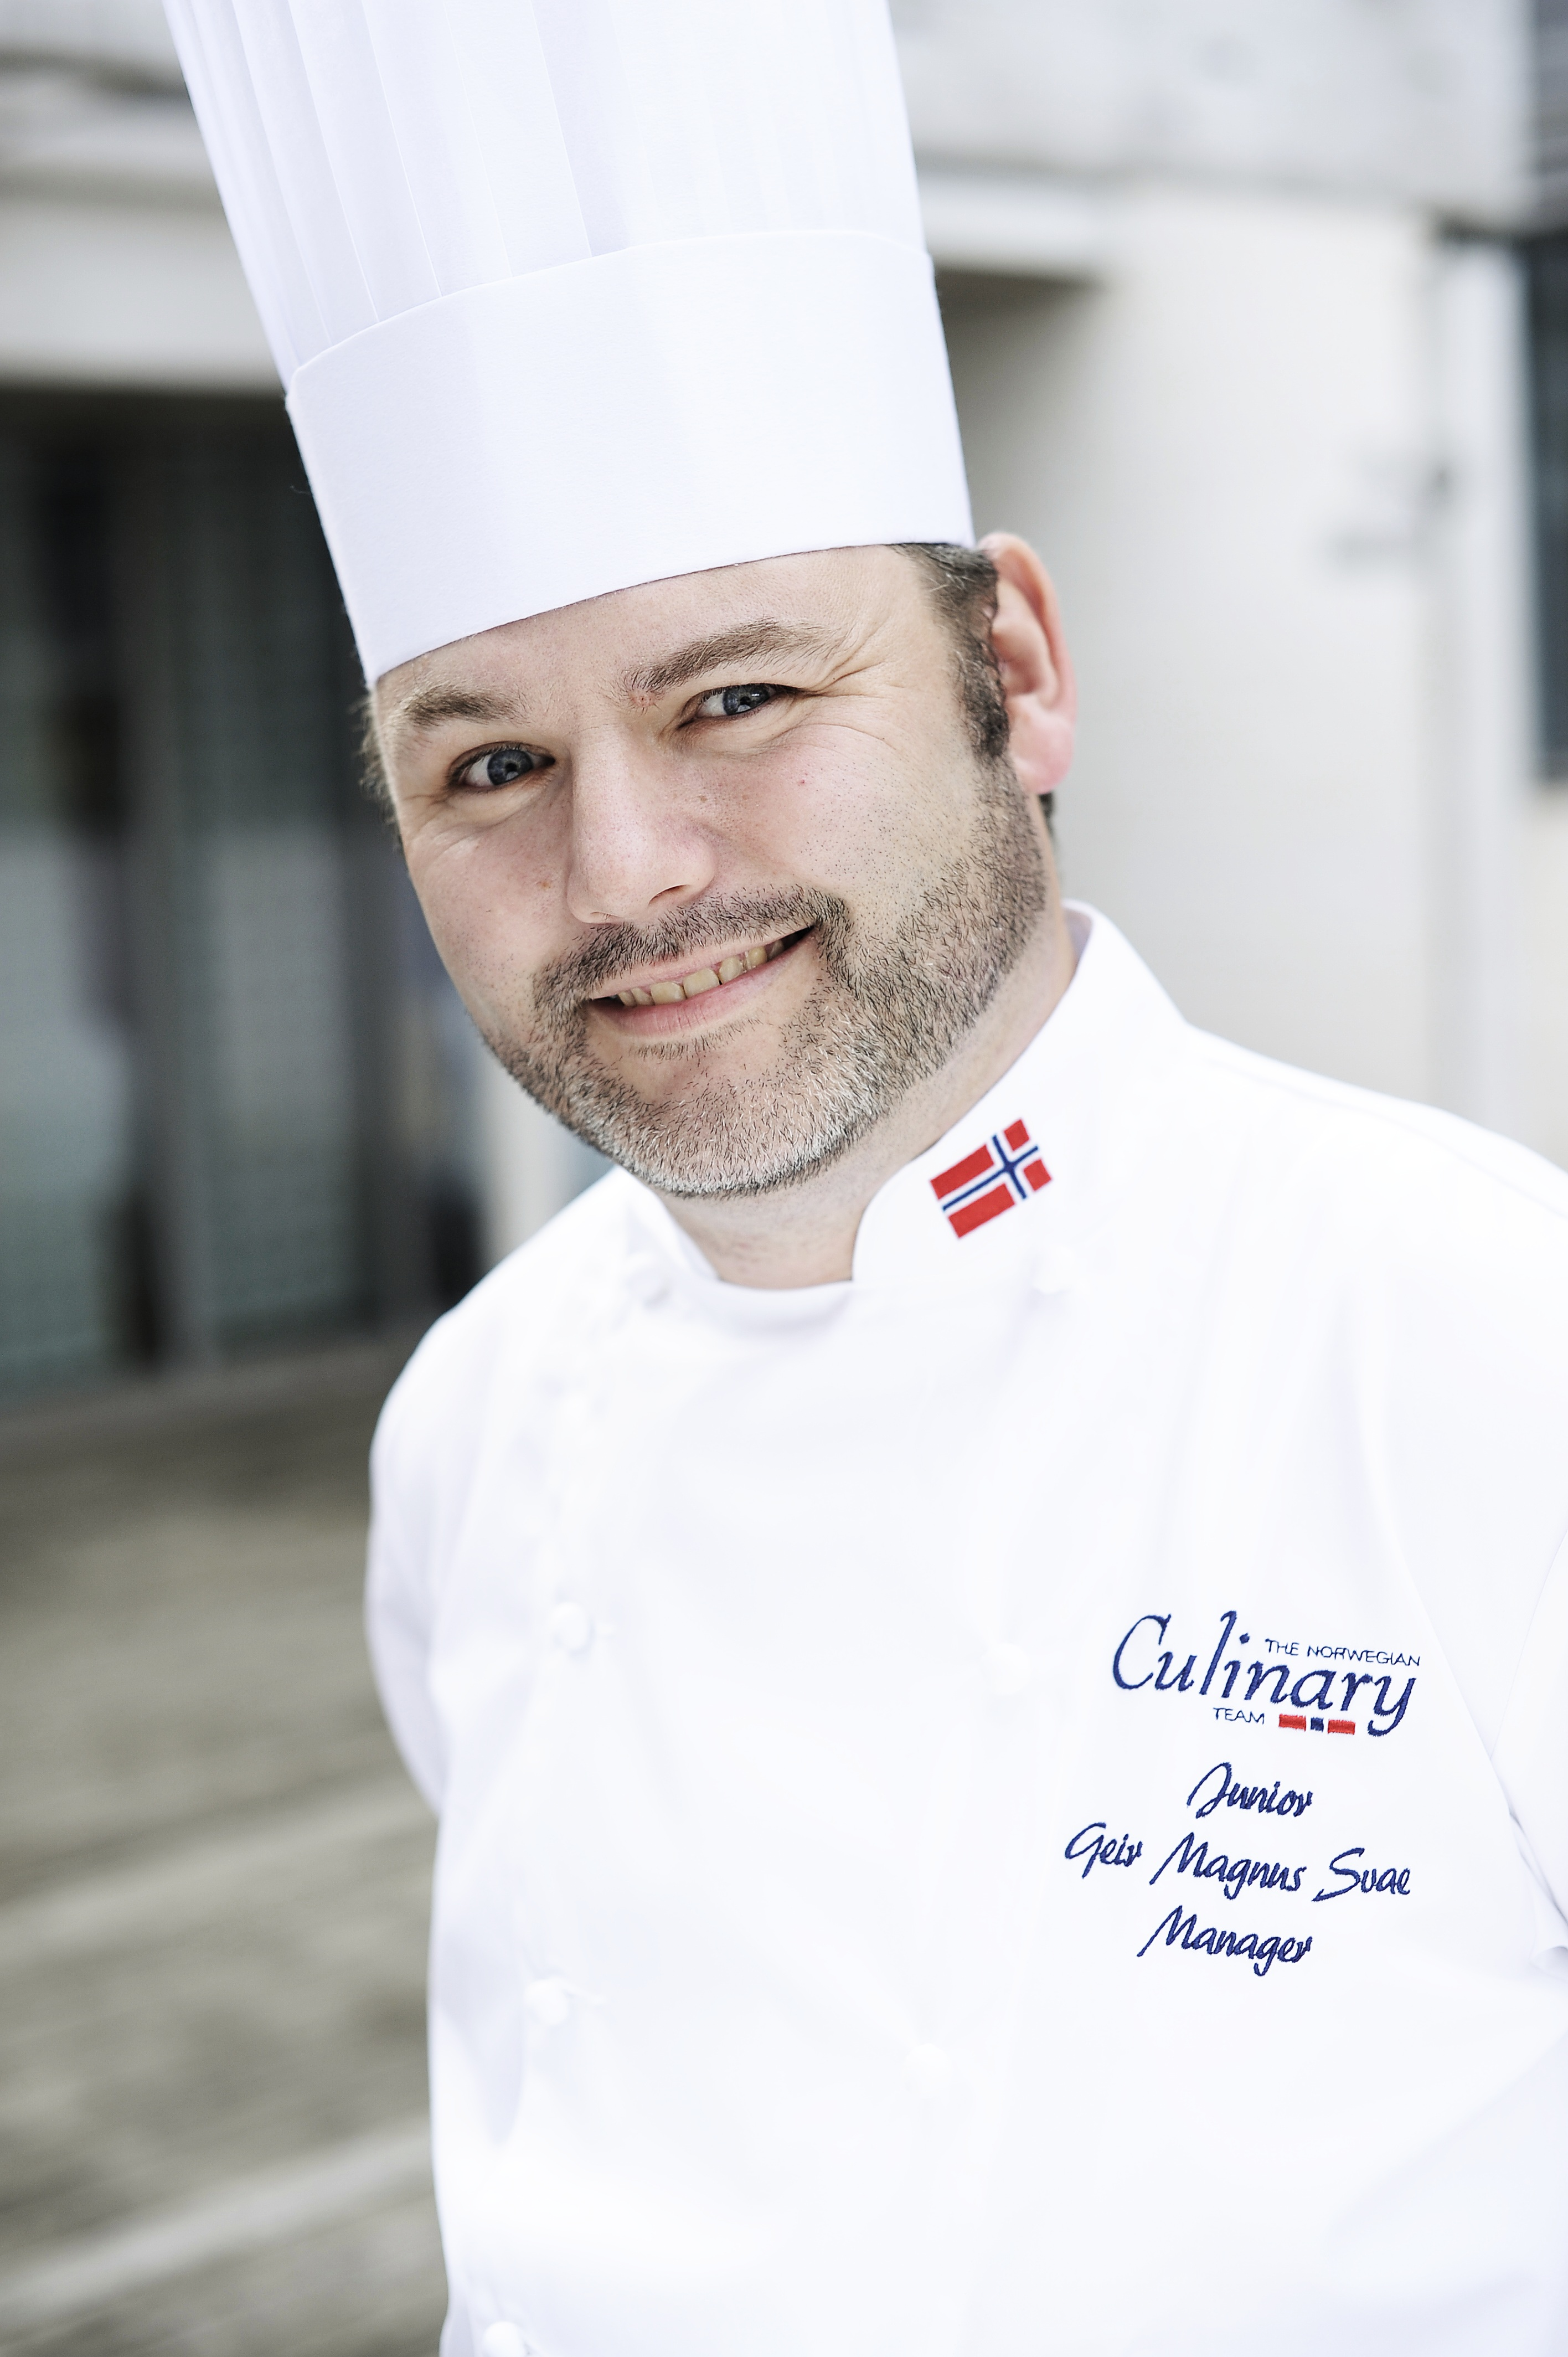 Geir Magnus Svae Norway's Global Chef Champion